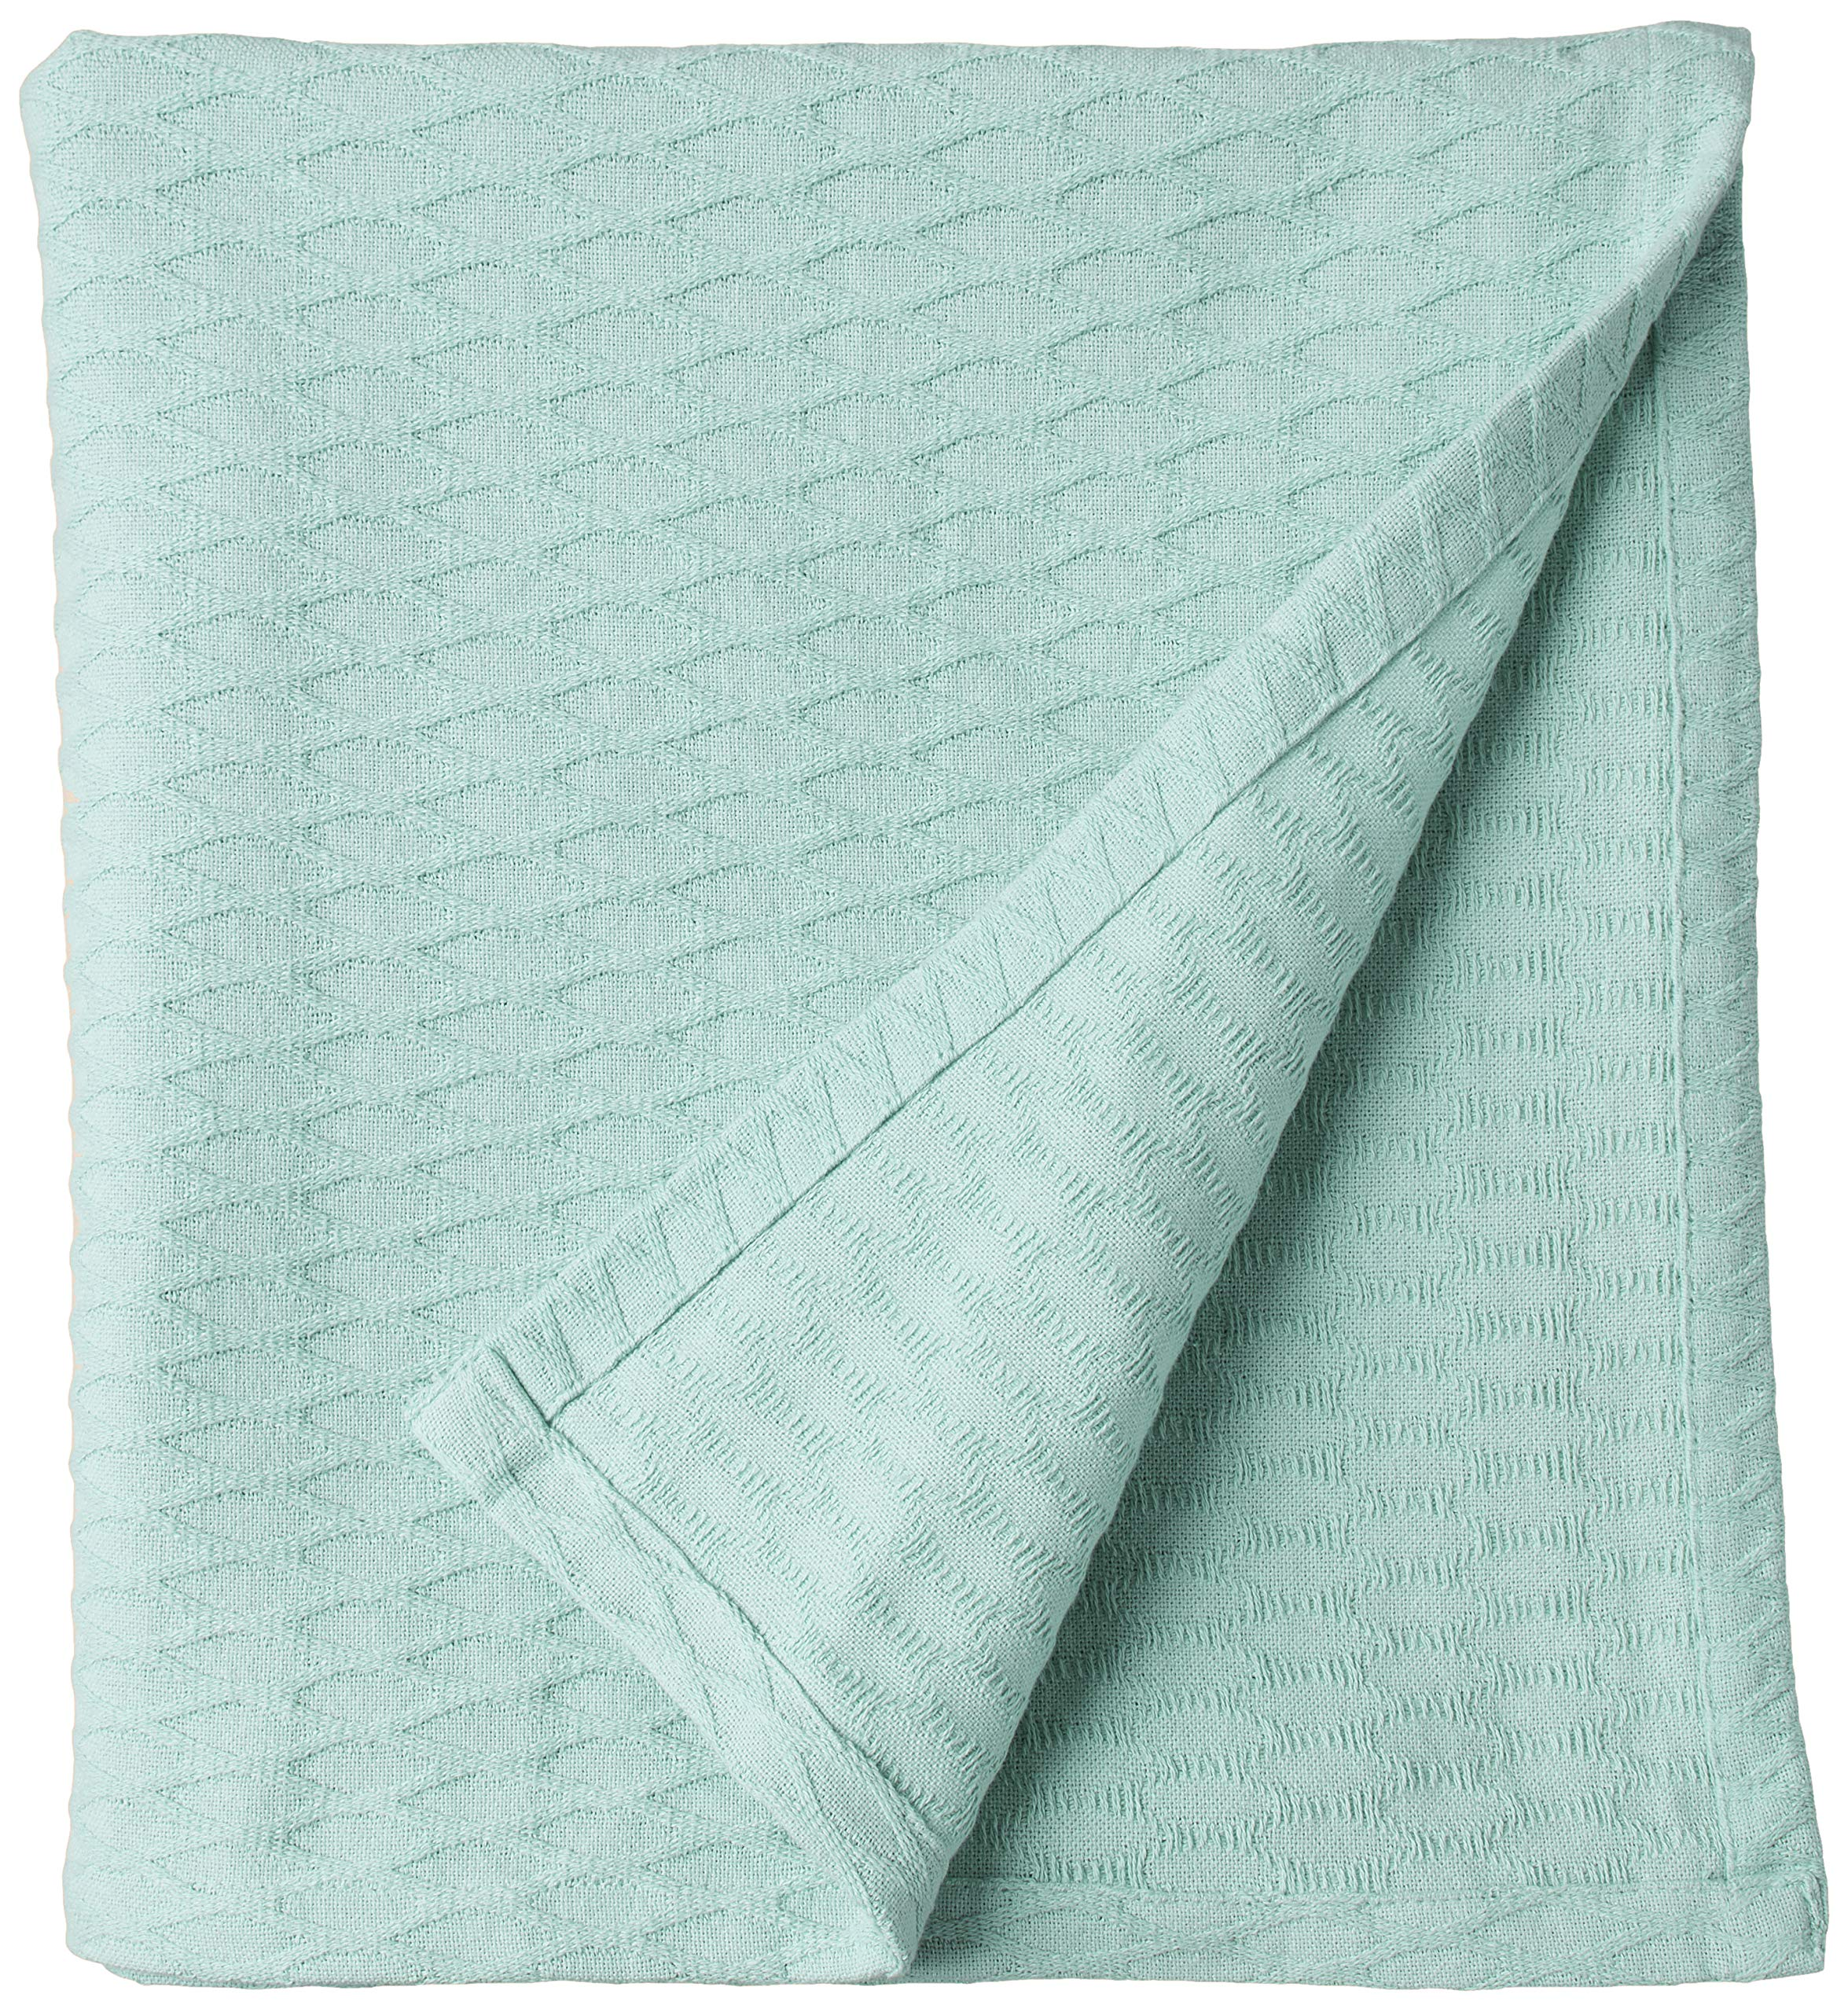 SUPERIOR 100% Cotton Thermal Blanket, Soft and Breathable Cotton for All Seasons, Bed Blanket and Oversized Throw Blanket with Luxurious Diamond Weave - Twin Size, Aqua